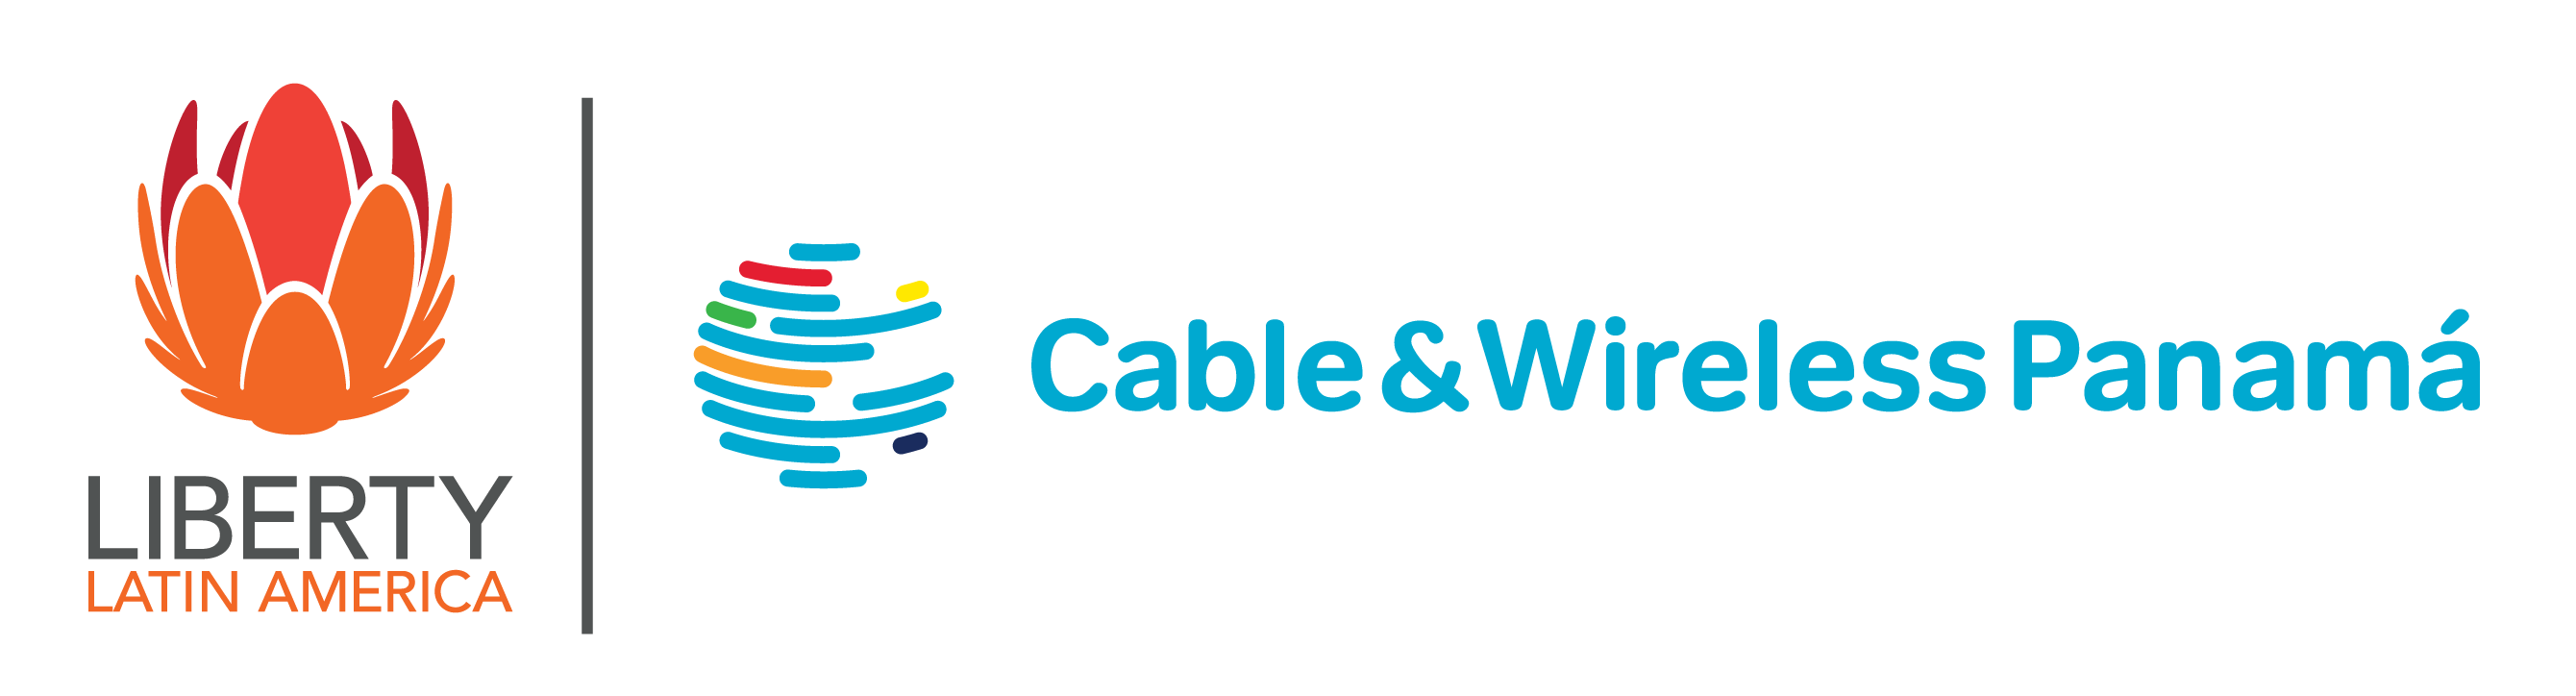 Cable and Wireless Panamá Logo